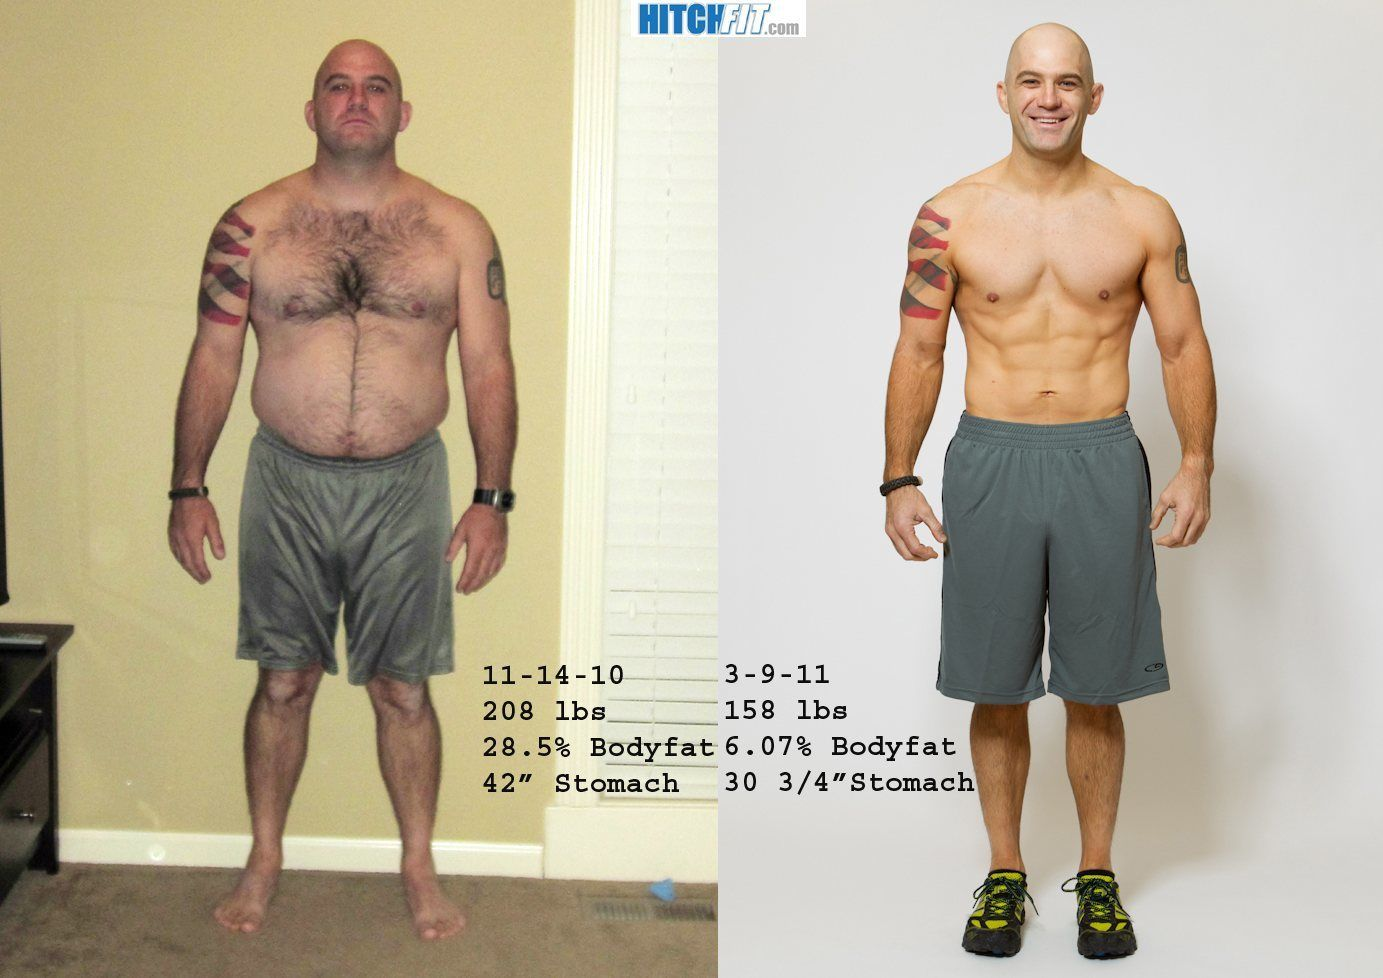 Police Officer Chad Lost 50 Pounds In Four Months With Hitch Fit